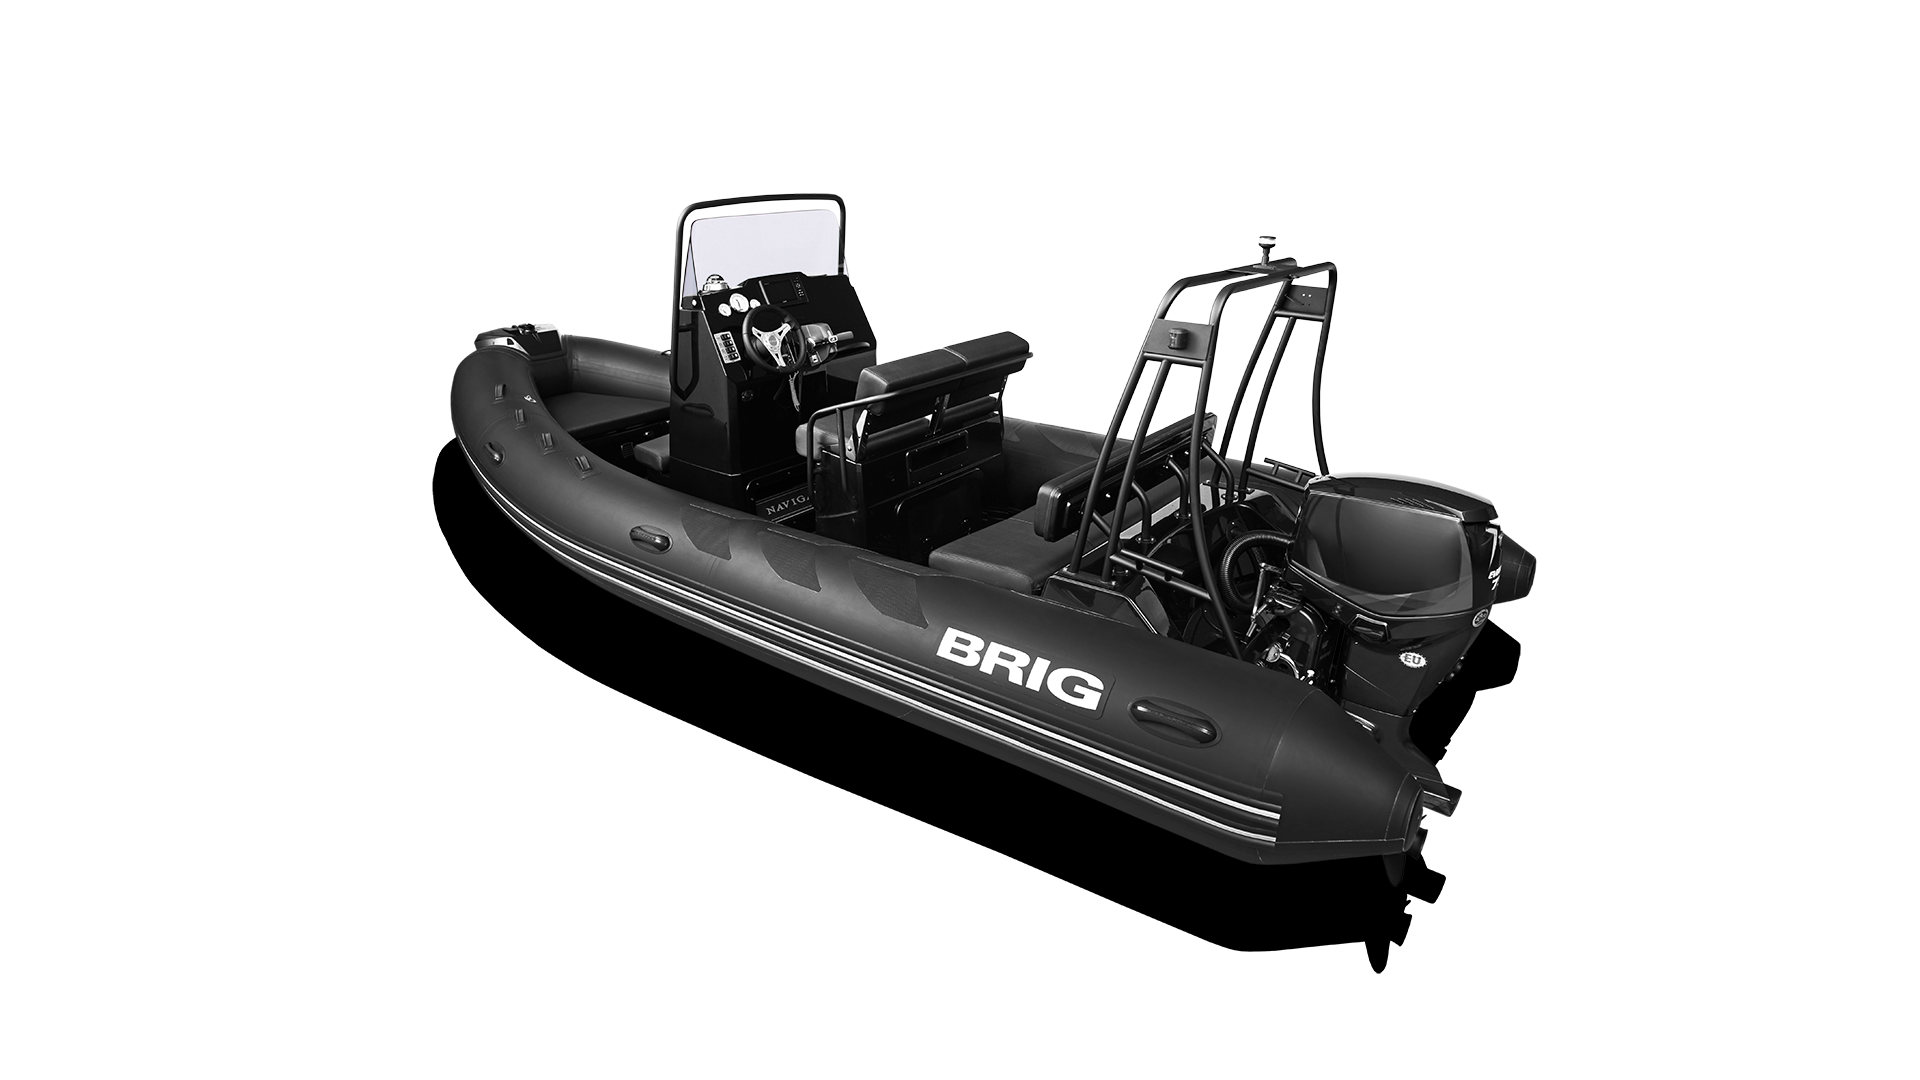 Navigator 570 Rigid Inflatable Boat